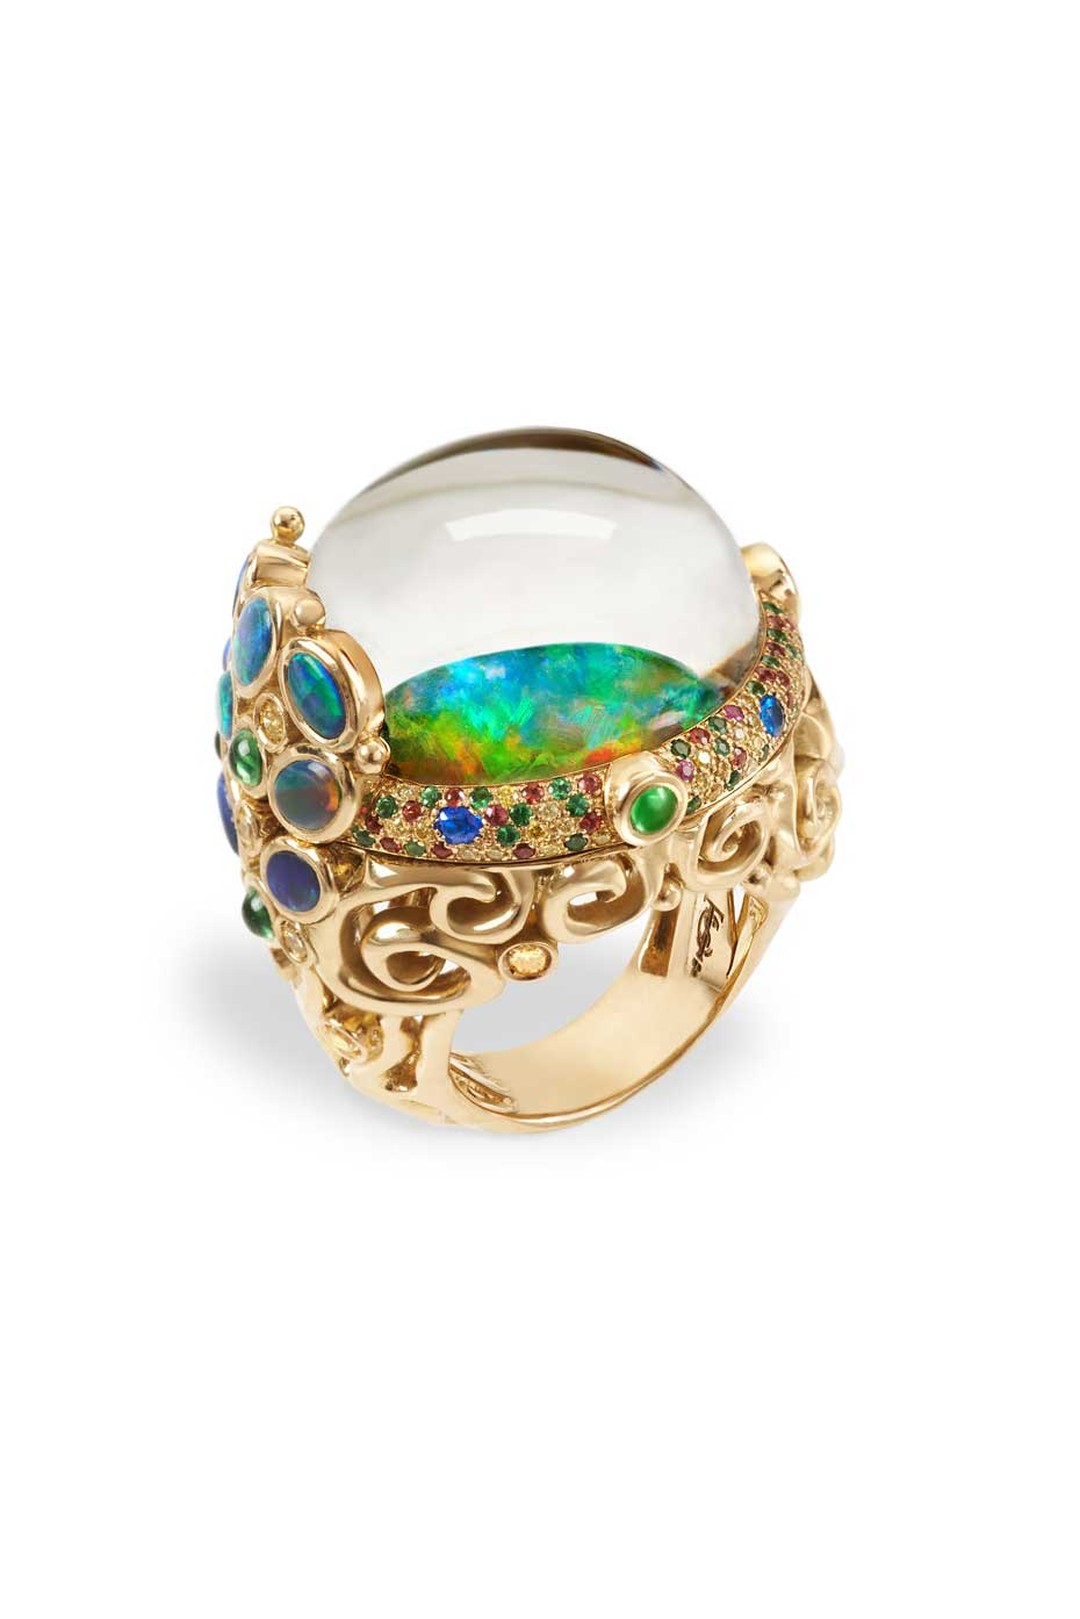 Temple St. Clair Medusa Moon Jellyfish ring featuring a rare, luminous Australian Andamooka opal, Lightning Ridge black opals, sapphires, tsavorites, hauyne and rock crystal.